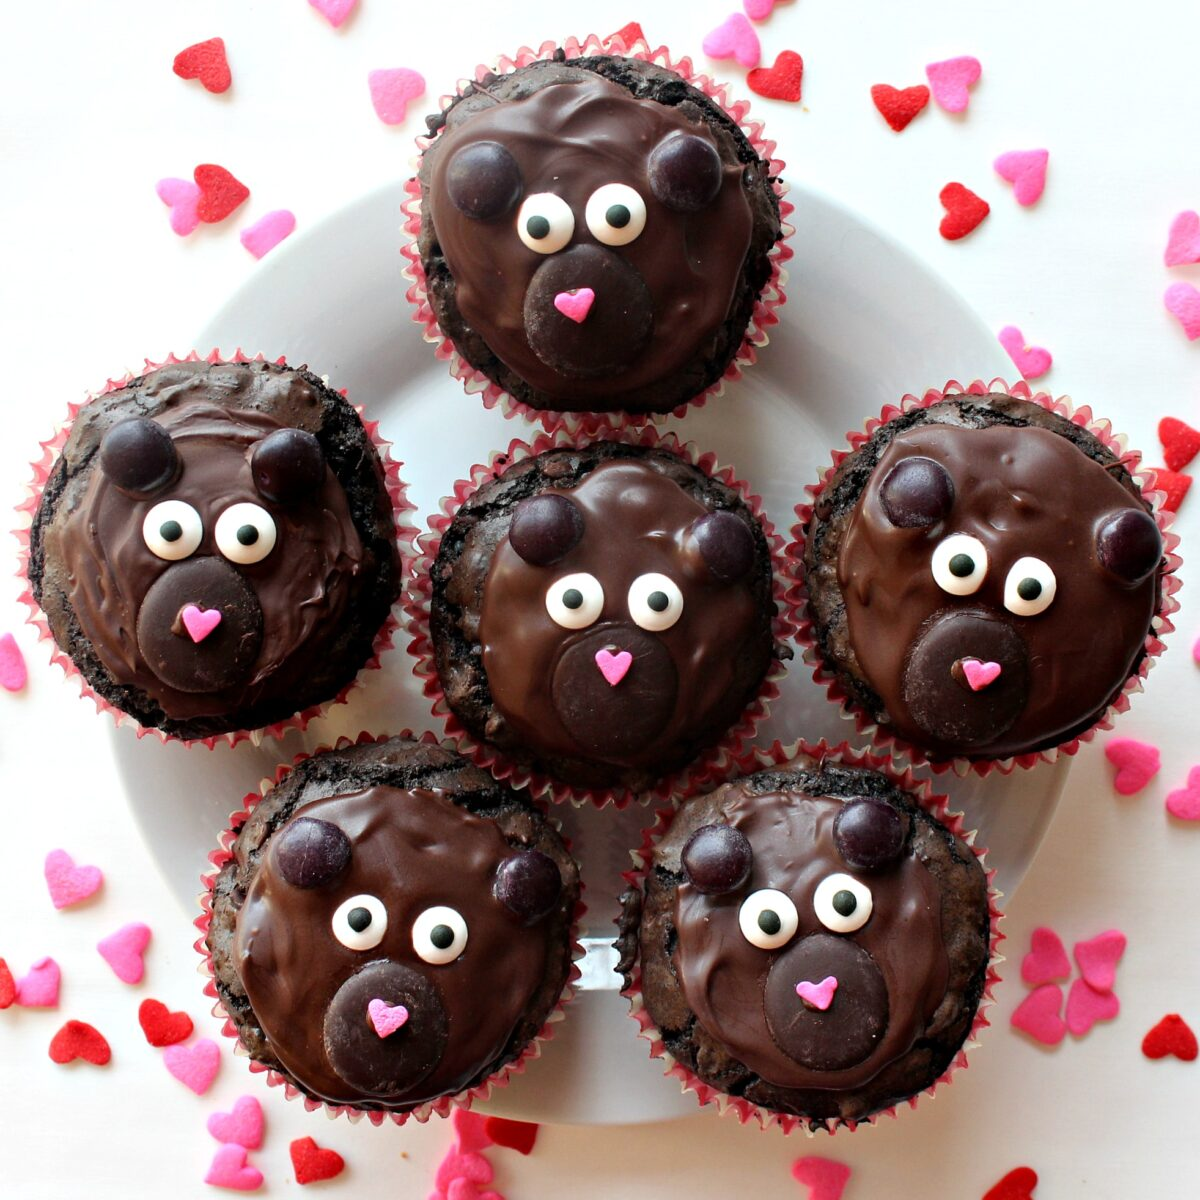 Brownie bears cupcakes on a white plate, surrounded by heart sprinkles.